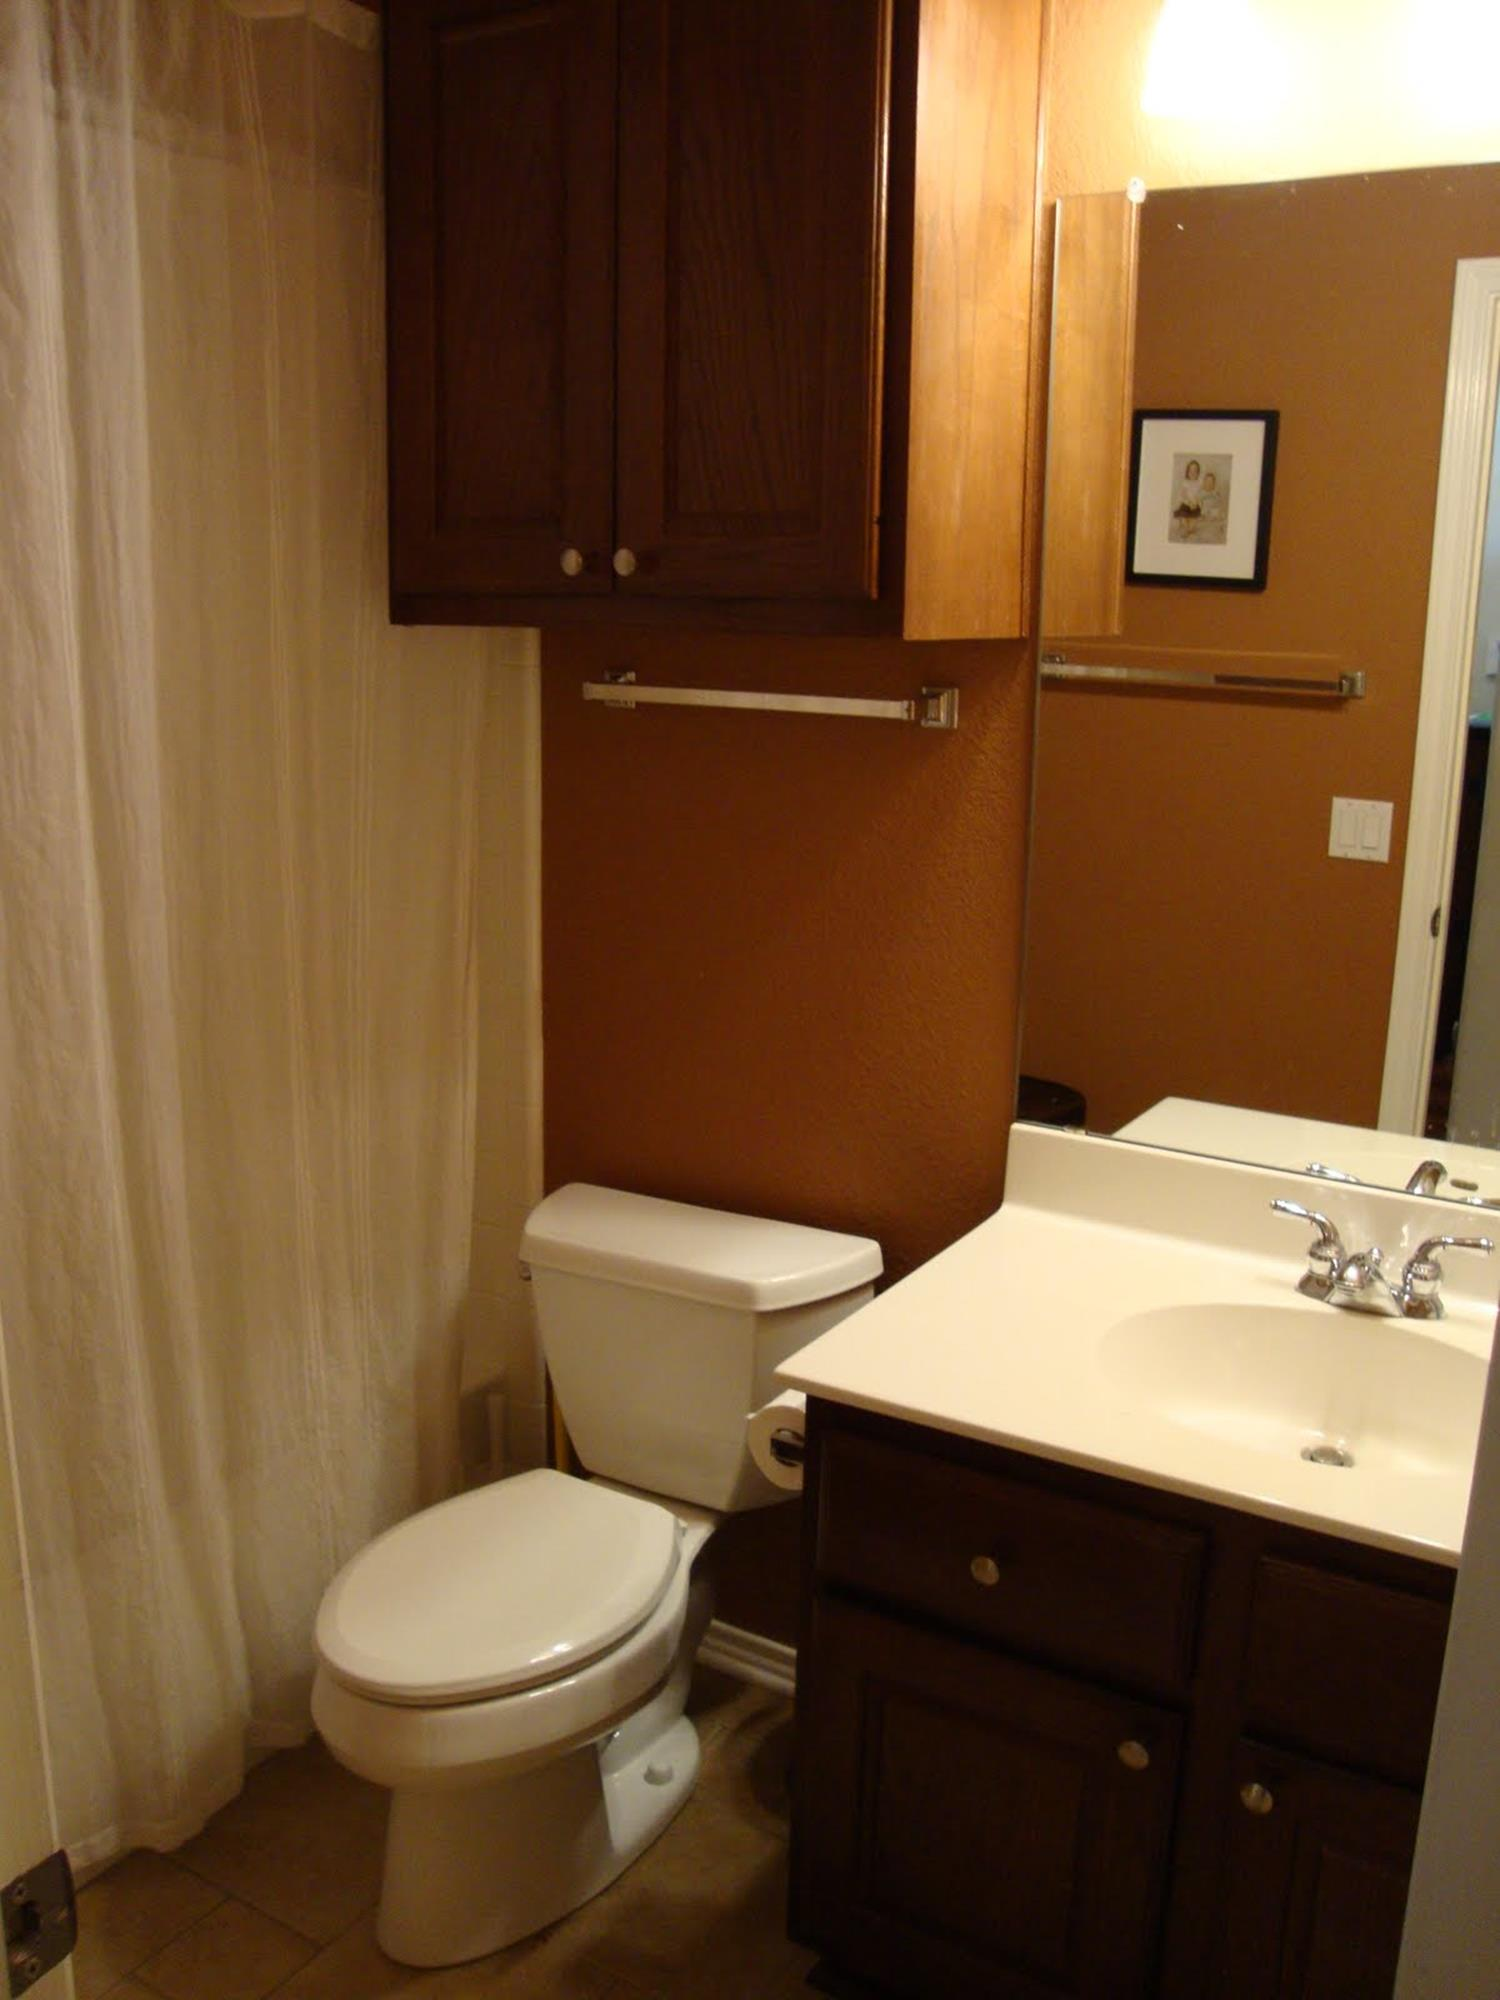 Spa Bathroom Remodel For Small Space 26